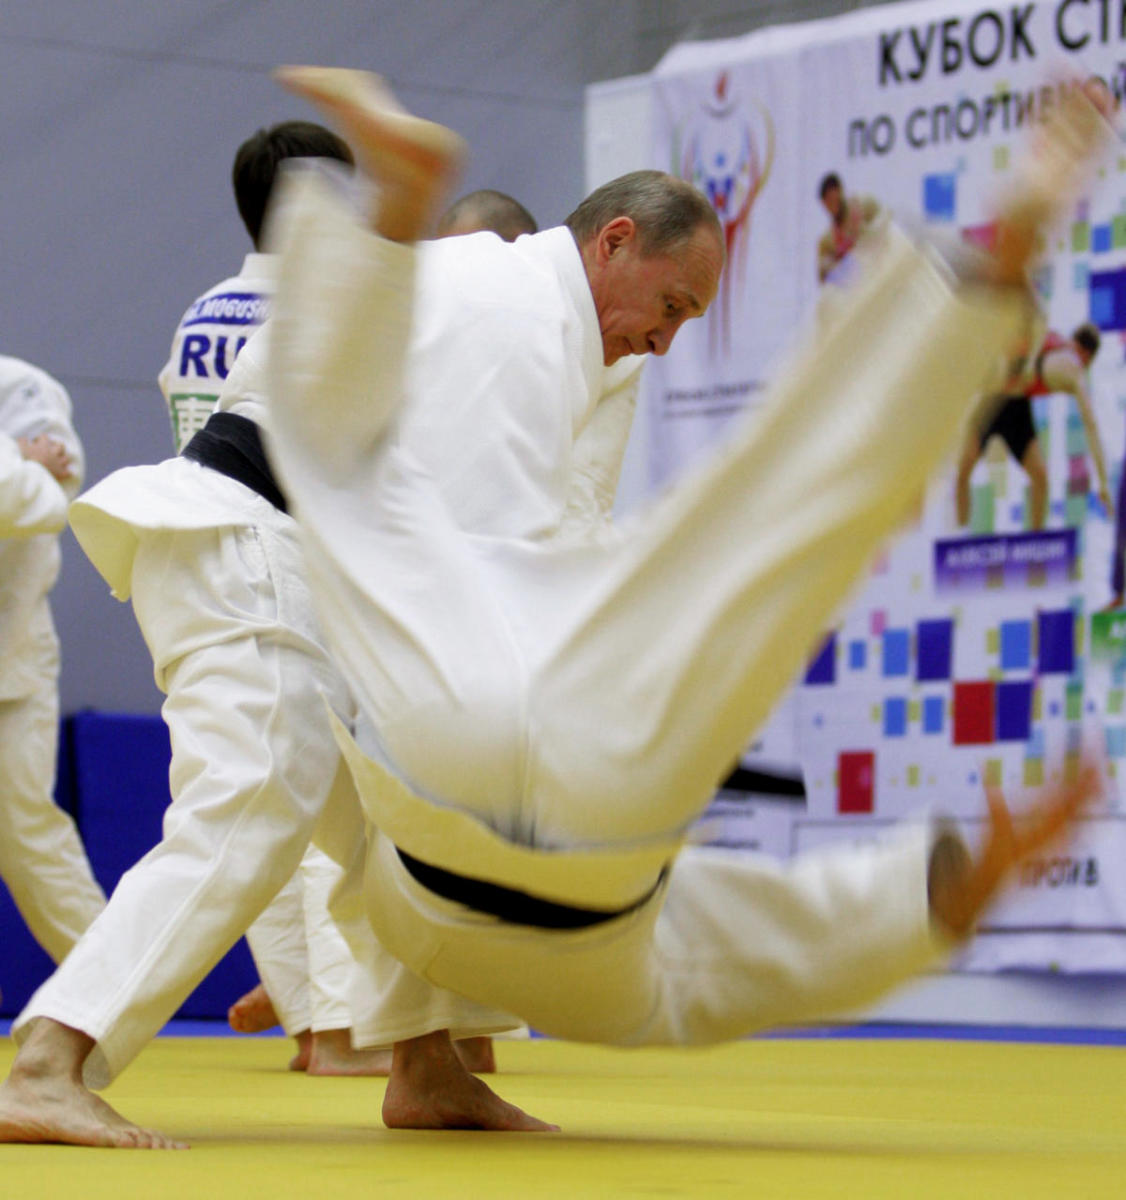 Vladimir Putin taking part in a judo training session in St. Petersburg, 2010.